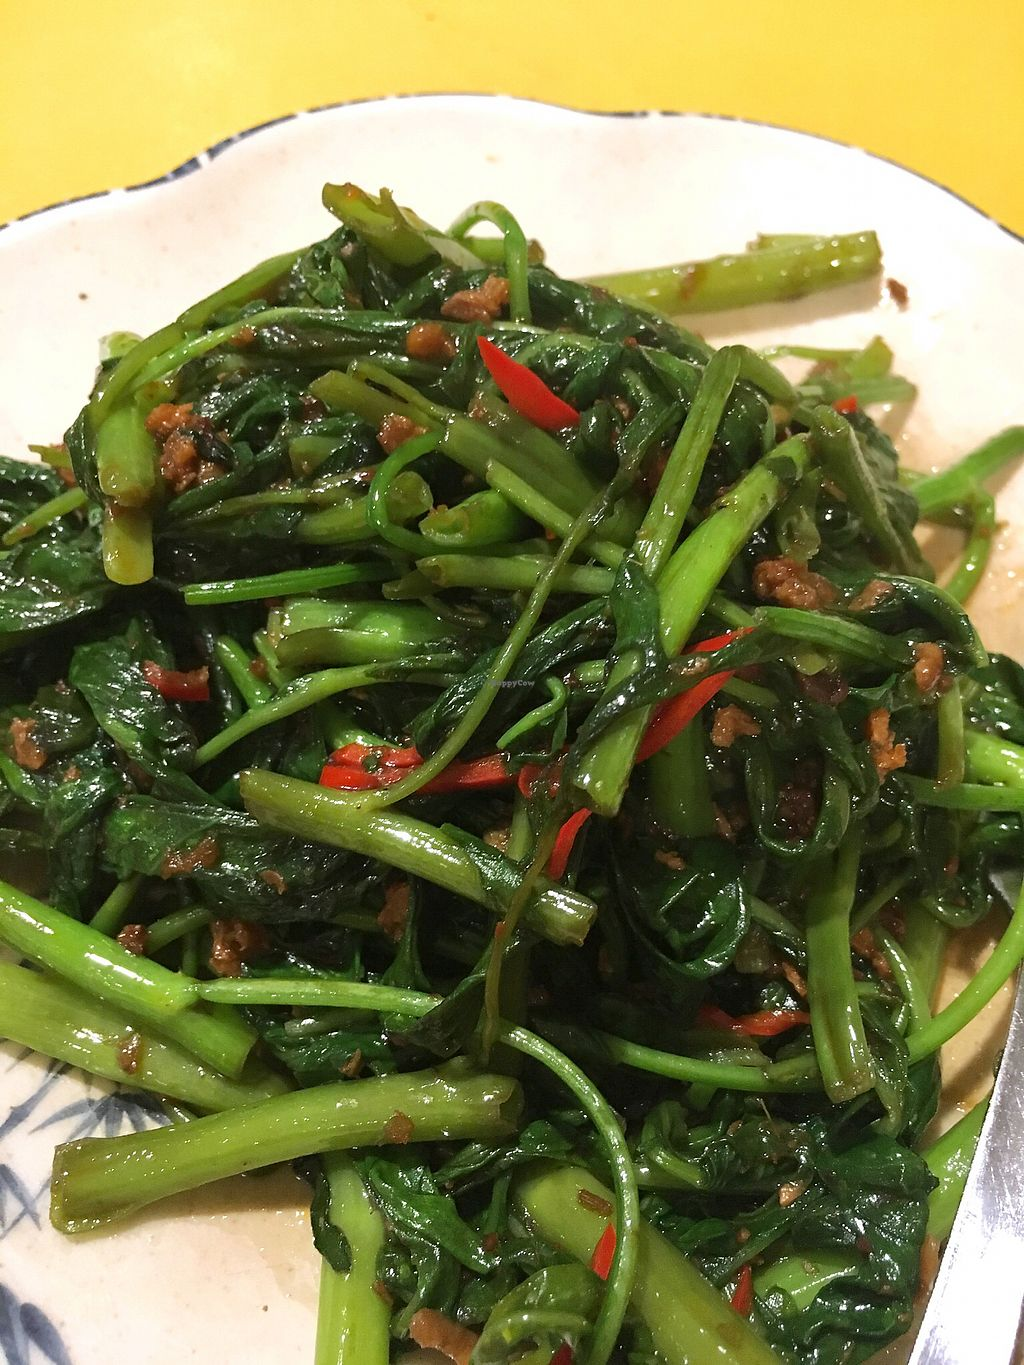 "Photo of Tian Pin Vegetarian Restaurant  by <a href=""/members/profile/pauldub"">pauldub</a> <br/>Kangkung belacan. Tasted just like conventional belacan dish. Vegan <br/> March 27, 2018  - <a href='/contact/abuse/image/23374/376921'>Report</a>"